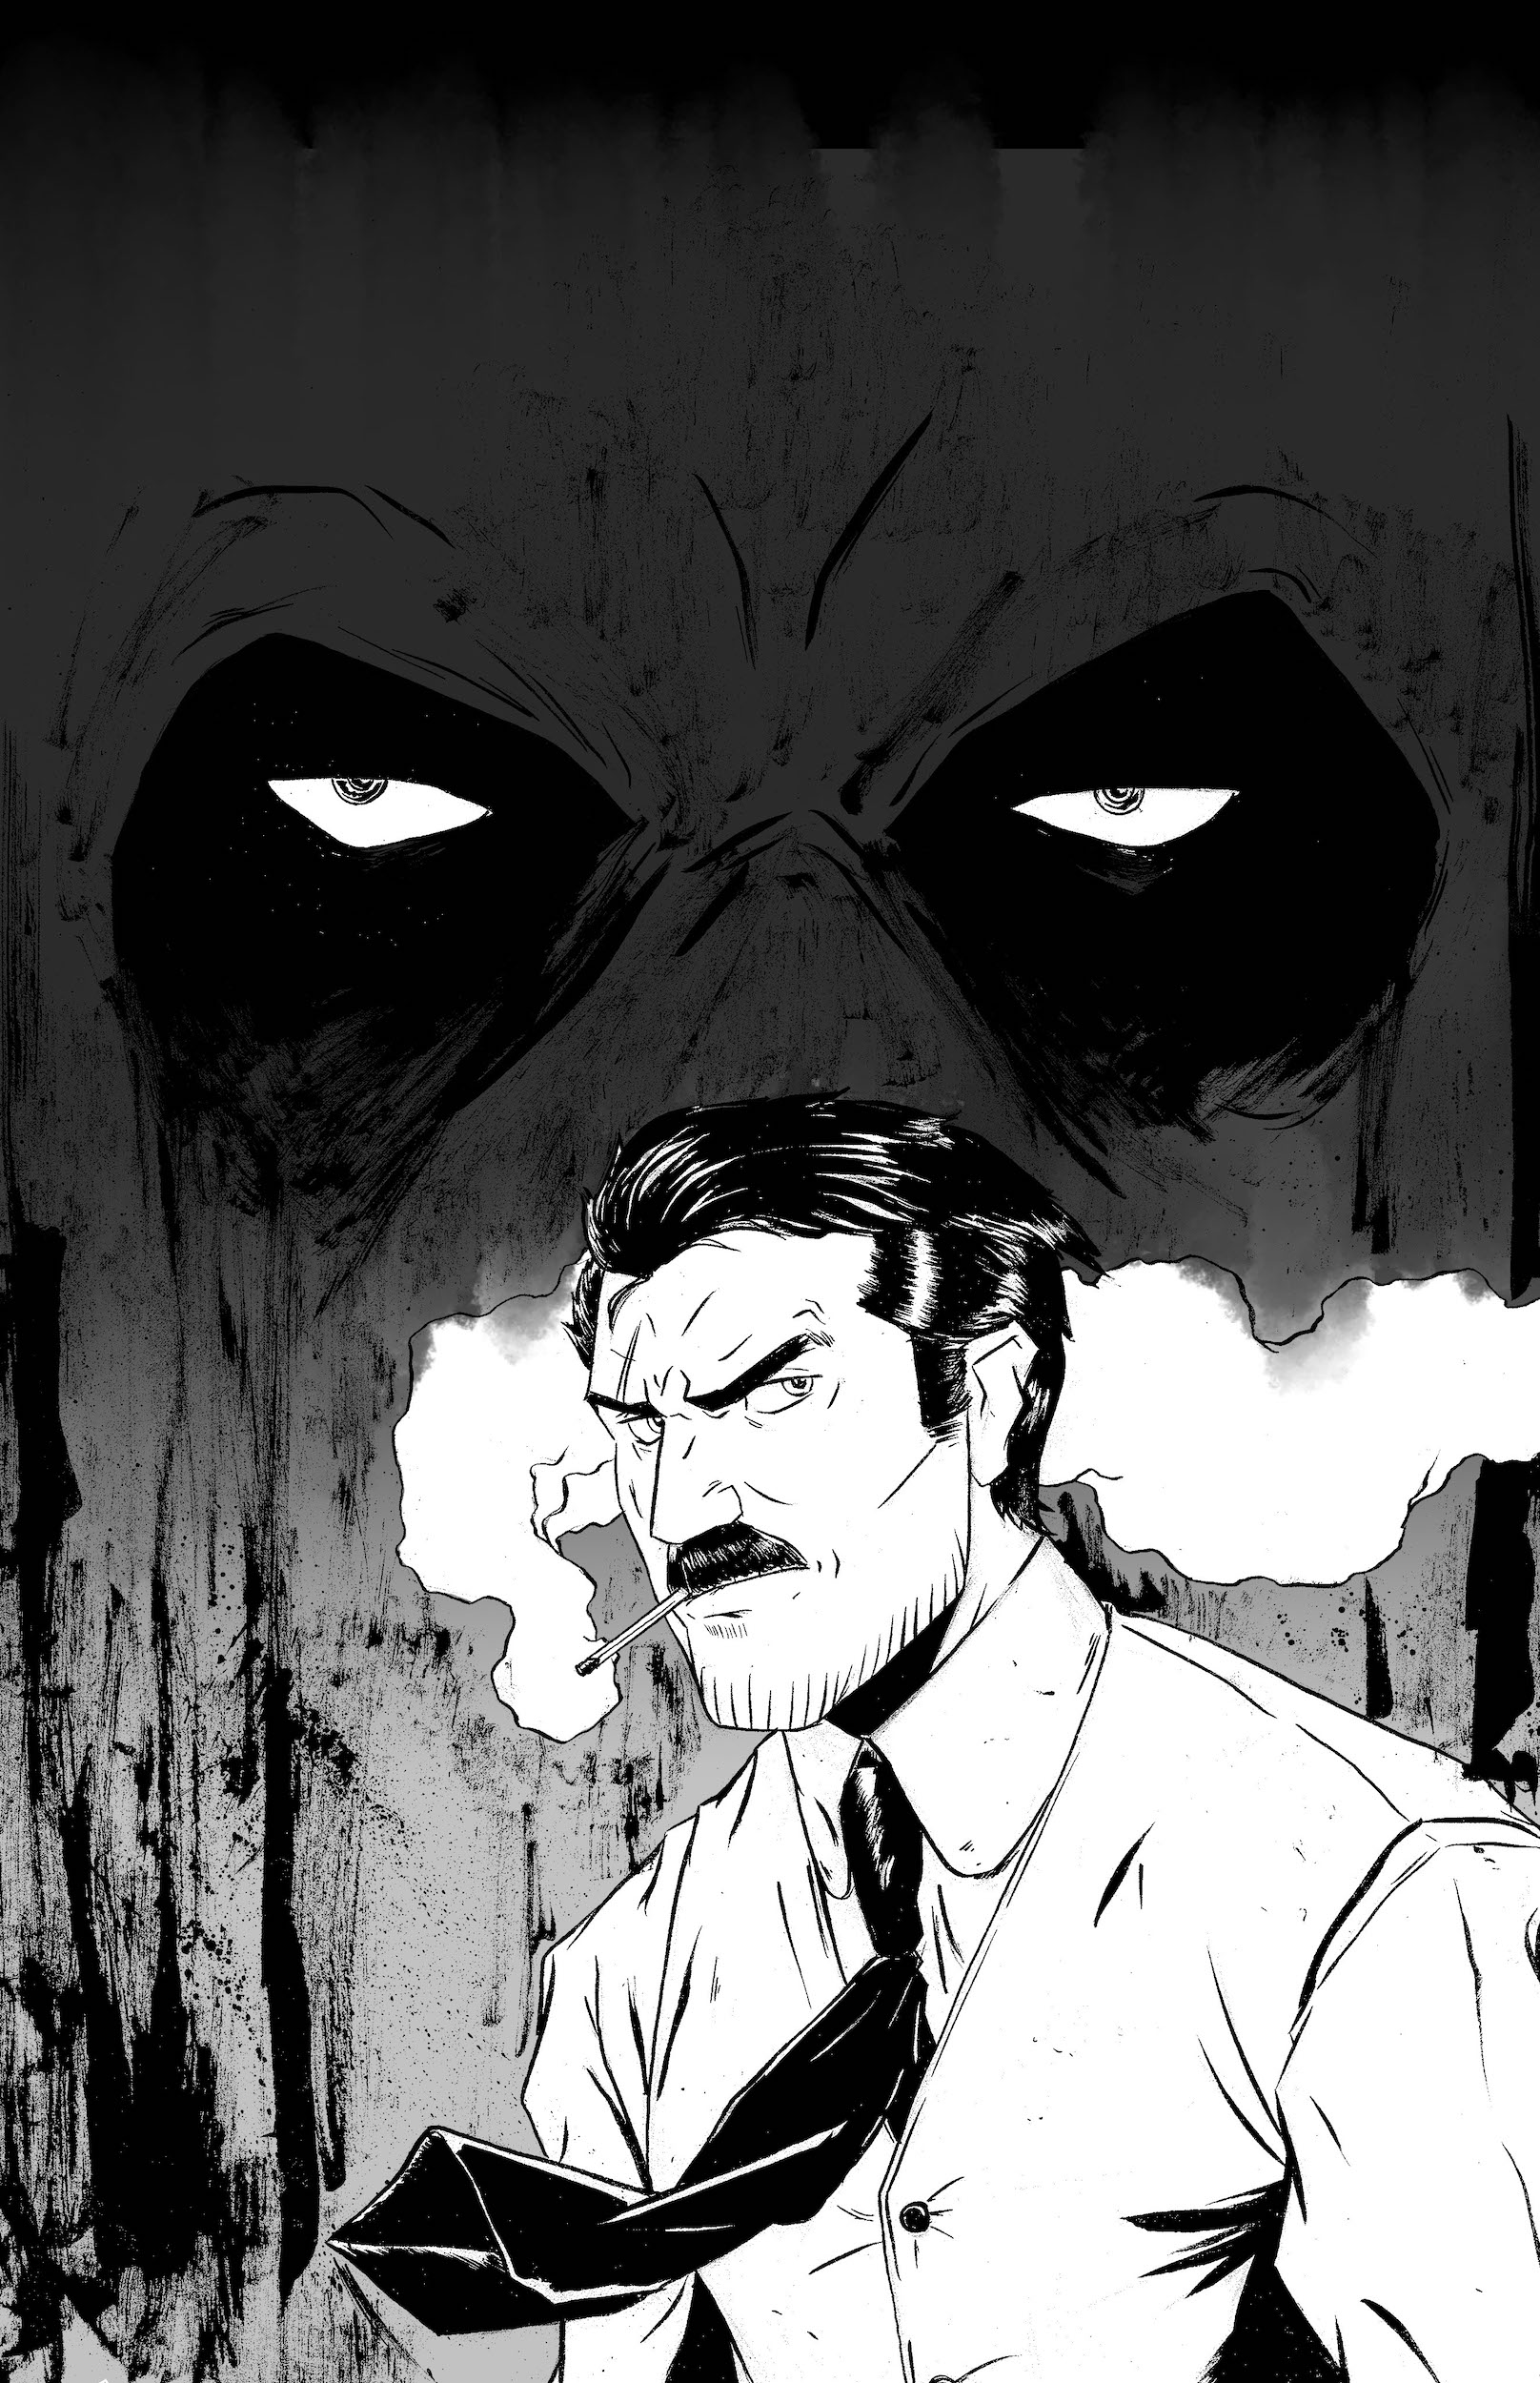 CARVER: A Paris Story Issue 1 Drawing